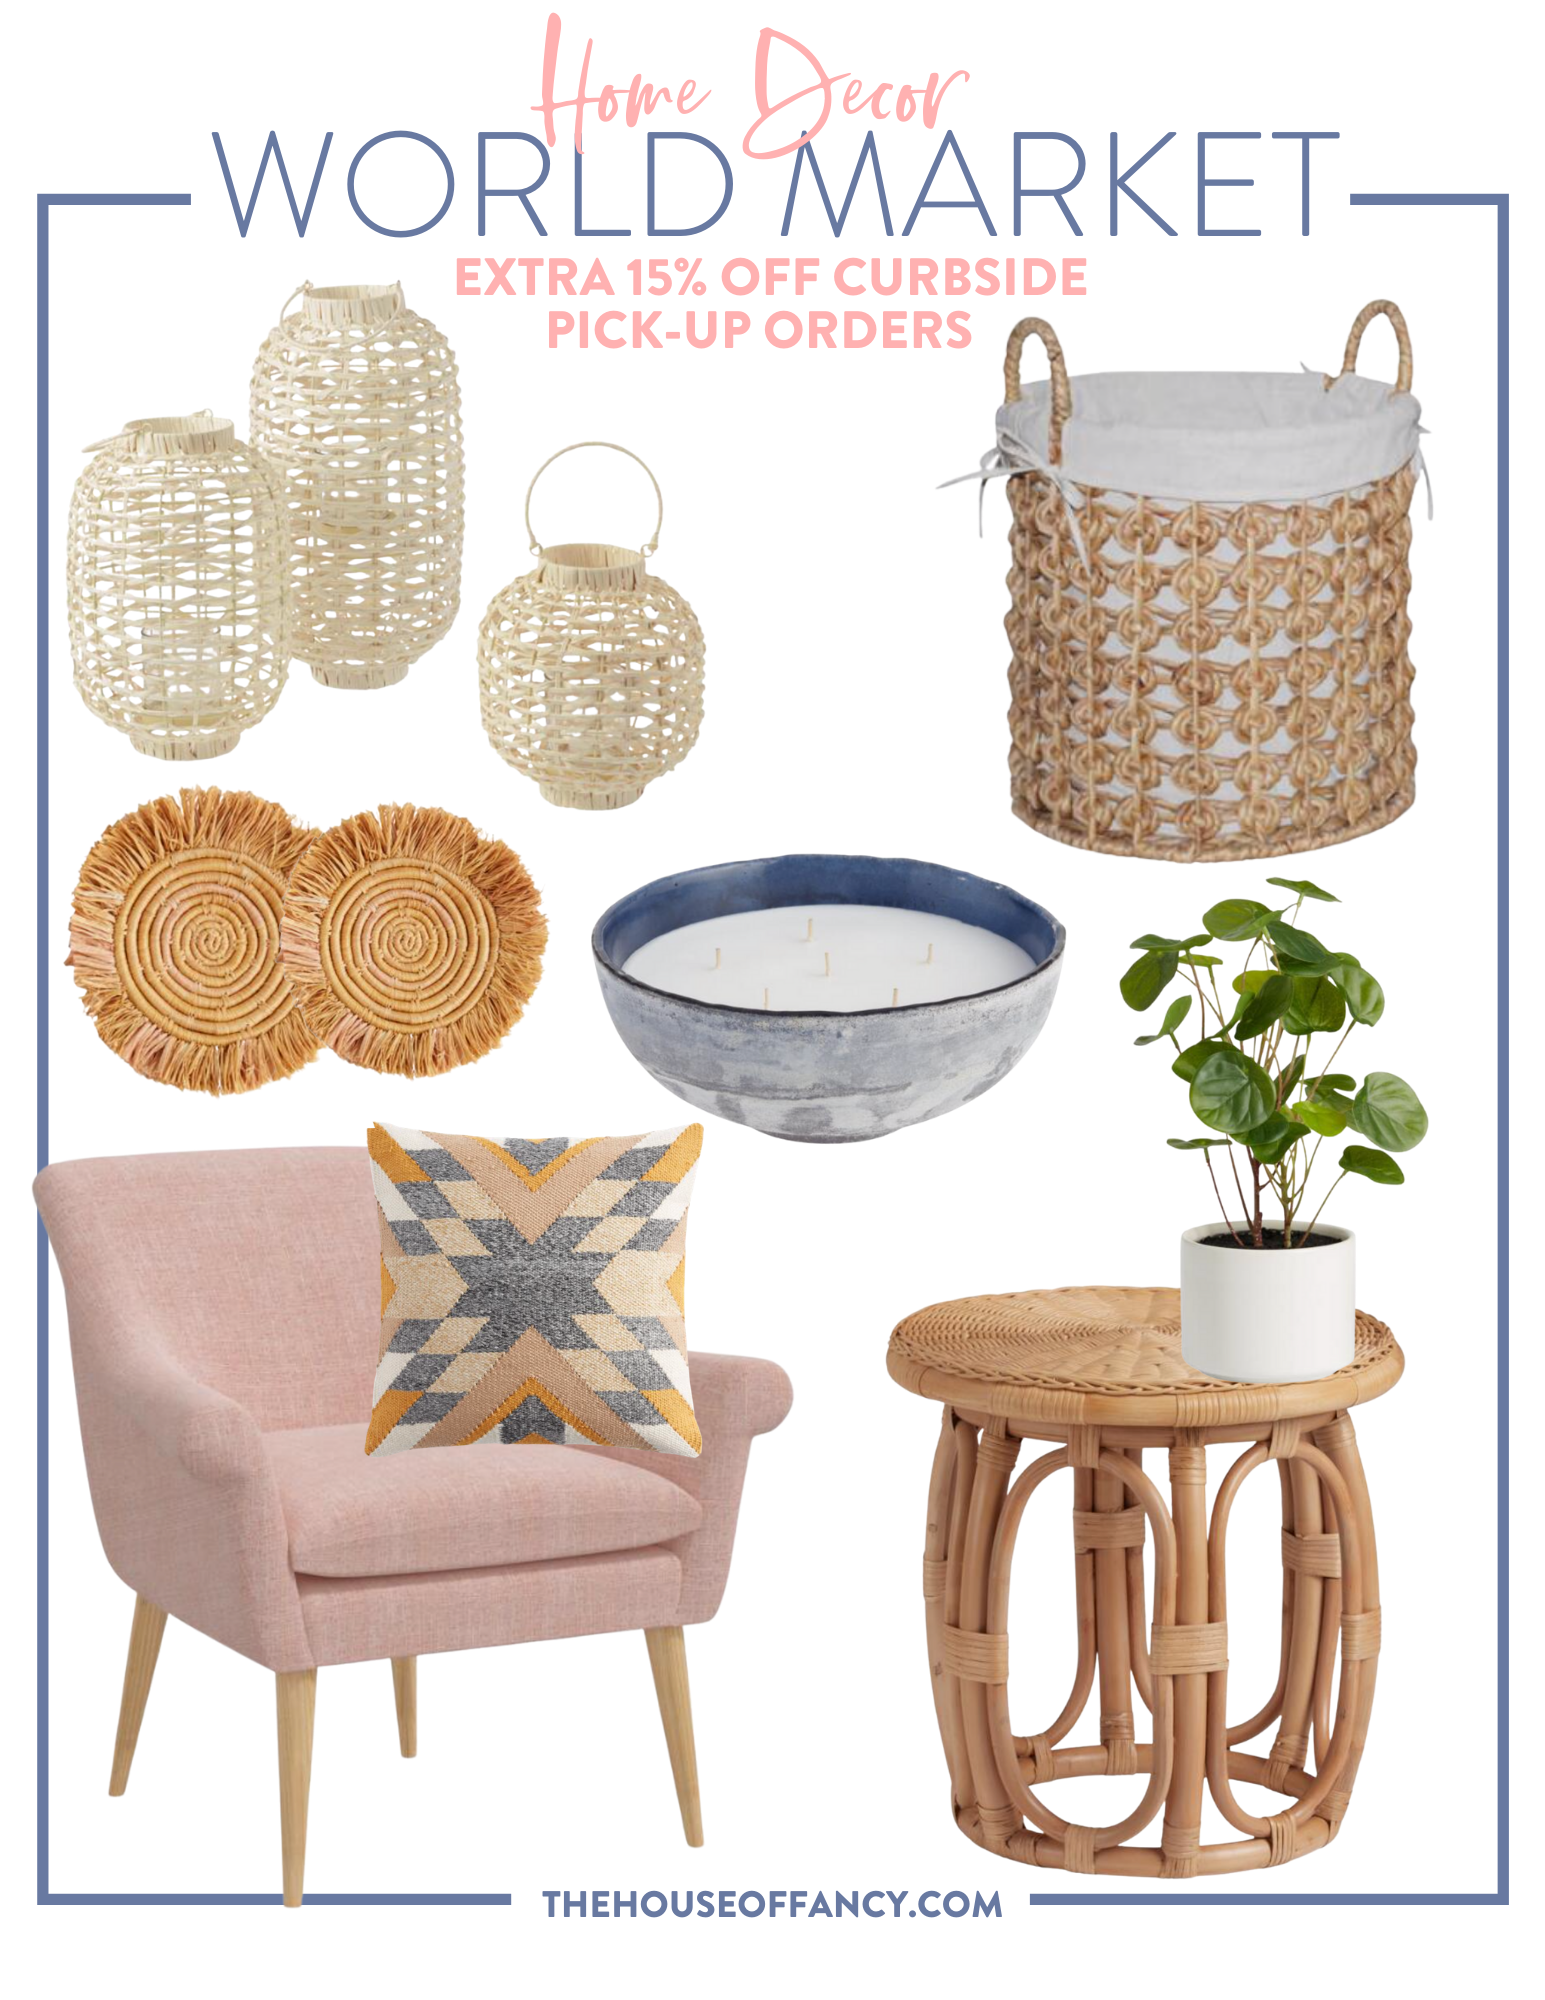 Memorial Day Sales by popular Houston life and style blog, The House of Fancy: collage image of a World Market wicker basket, World Market 6 wick candle, World Market potted house plant in a white planter, World market tribal print throw pillow, World Market pine armchair, World Market rattan end table, World Market straw mats, and World Market wicker lanterns.